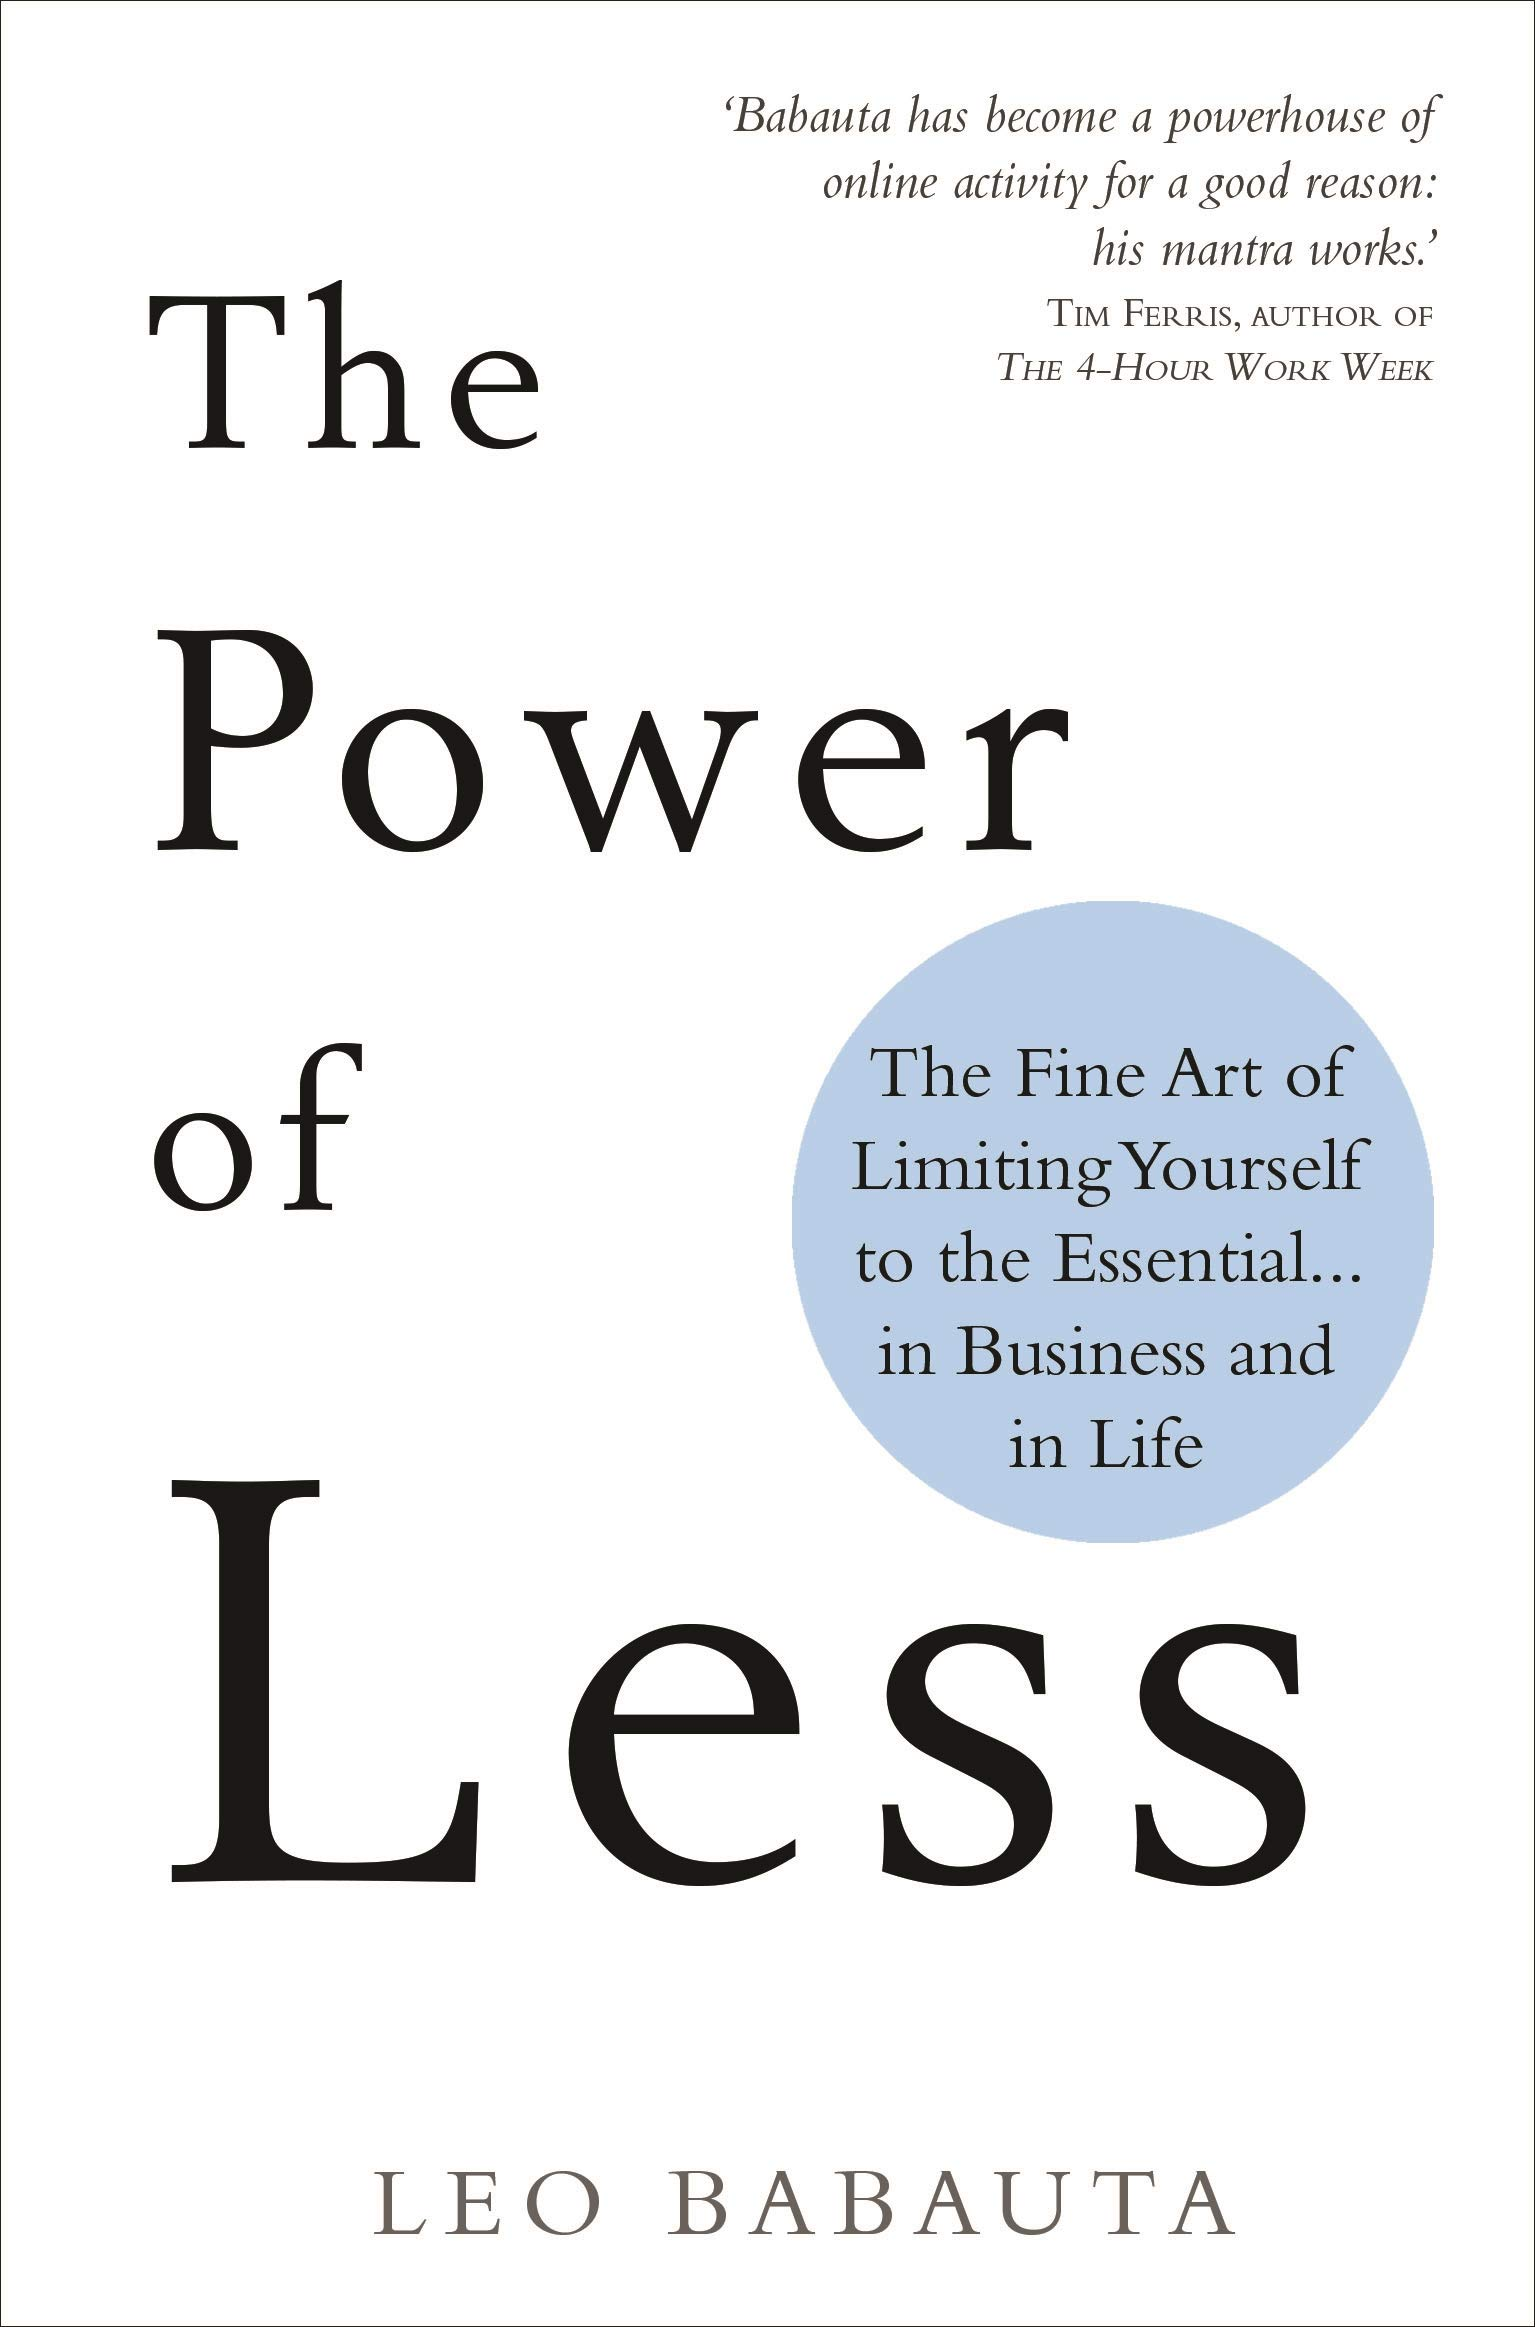 the power of less by leo babauta pdf free download